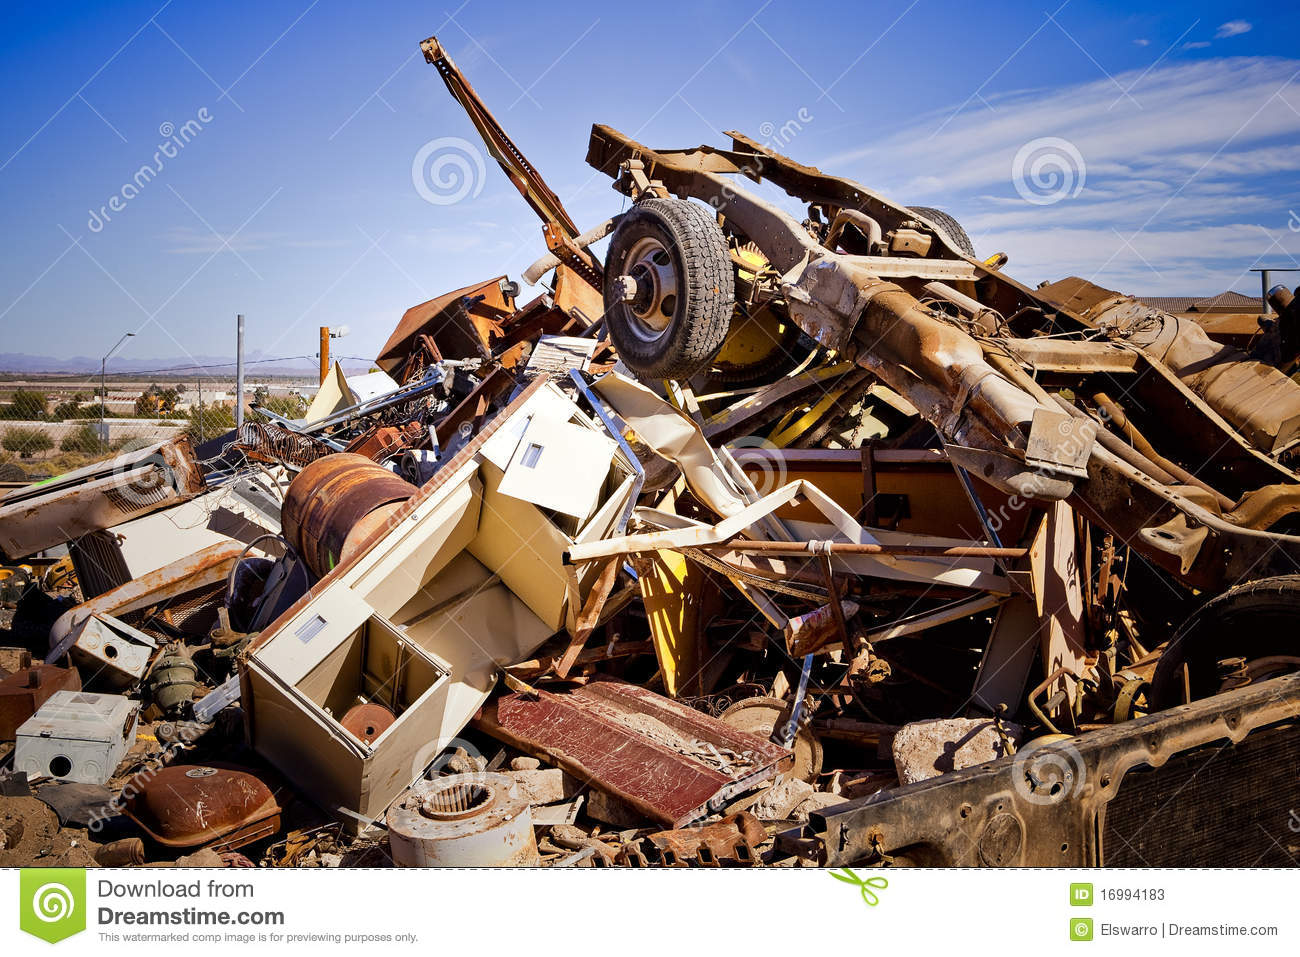 Junk Yard Pile stock image. Image of center, junk, corroding - 16994183